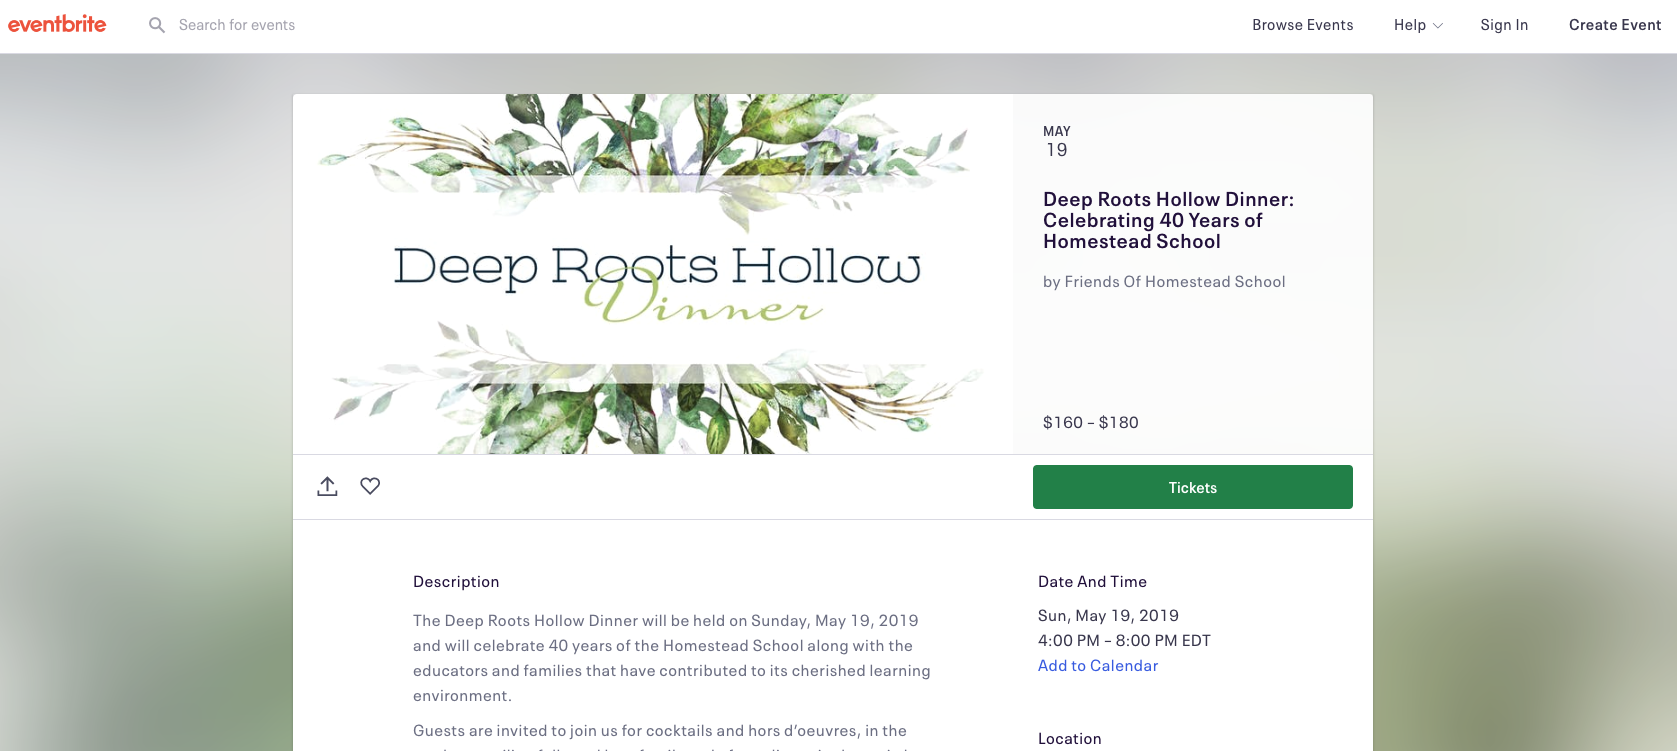 Eventbrite  Brand applied to  Eventbrite  for Homestead School's upcoming 40th Anniversary Dinner.